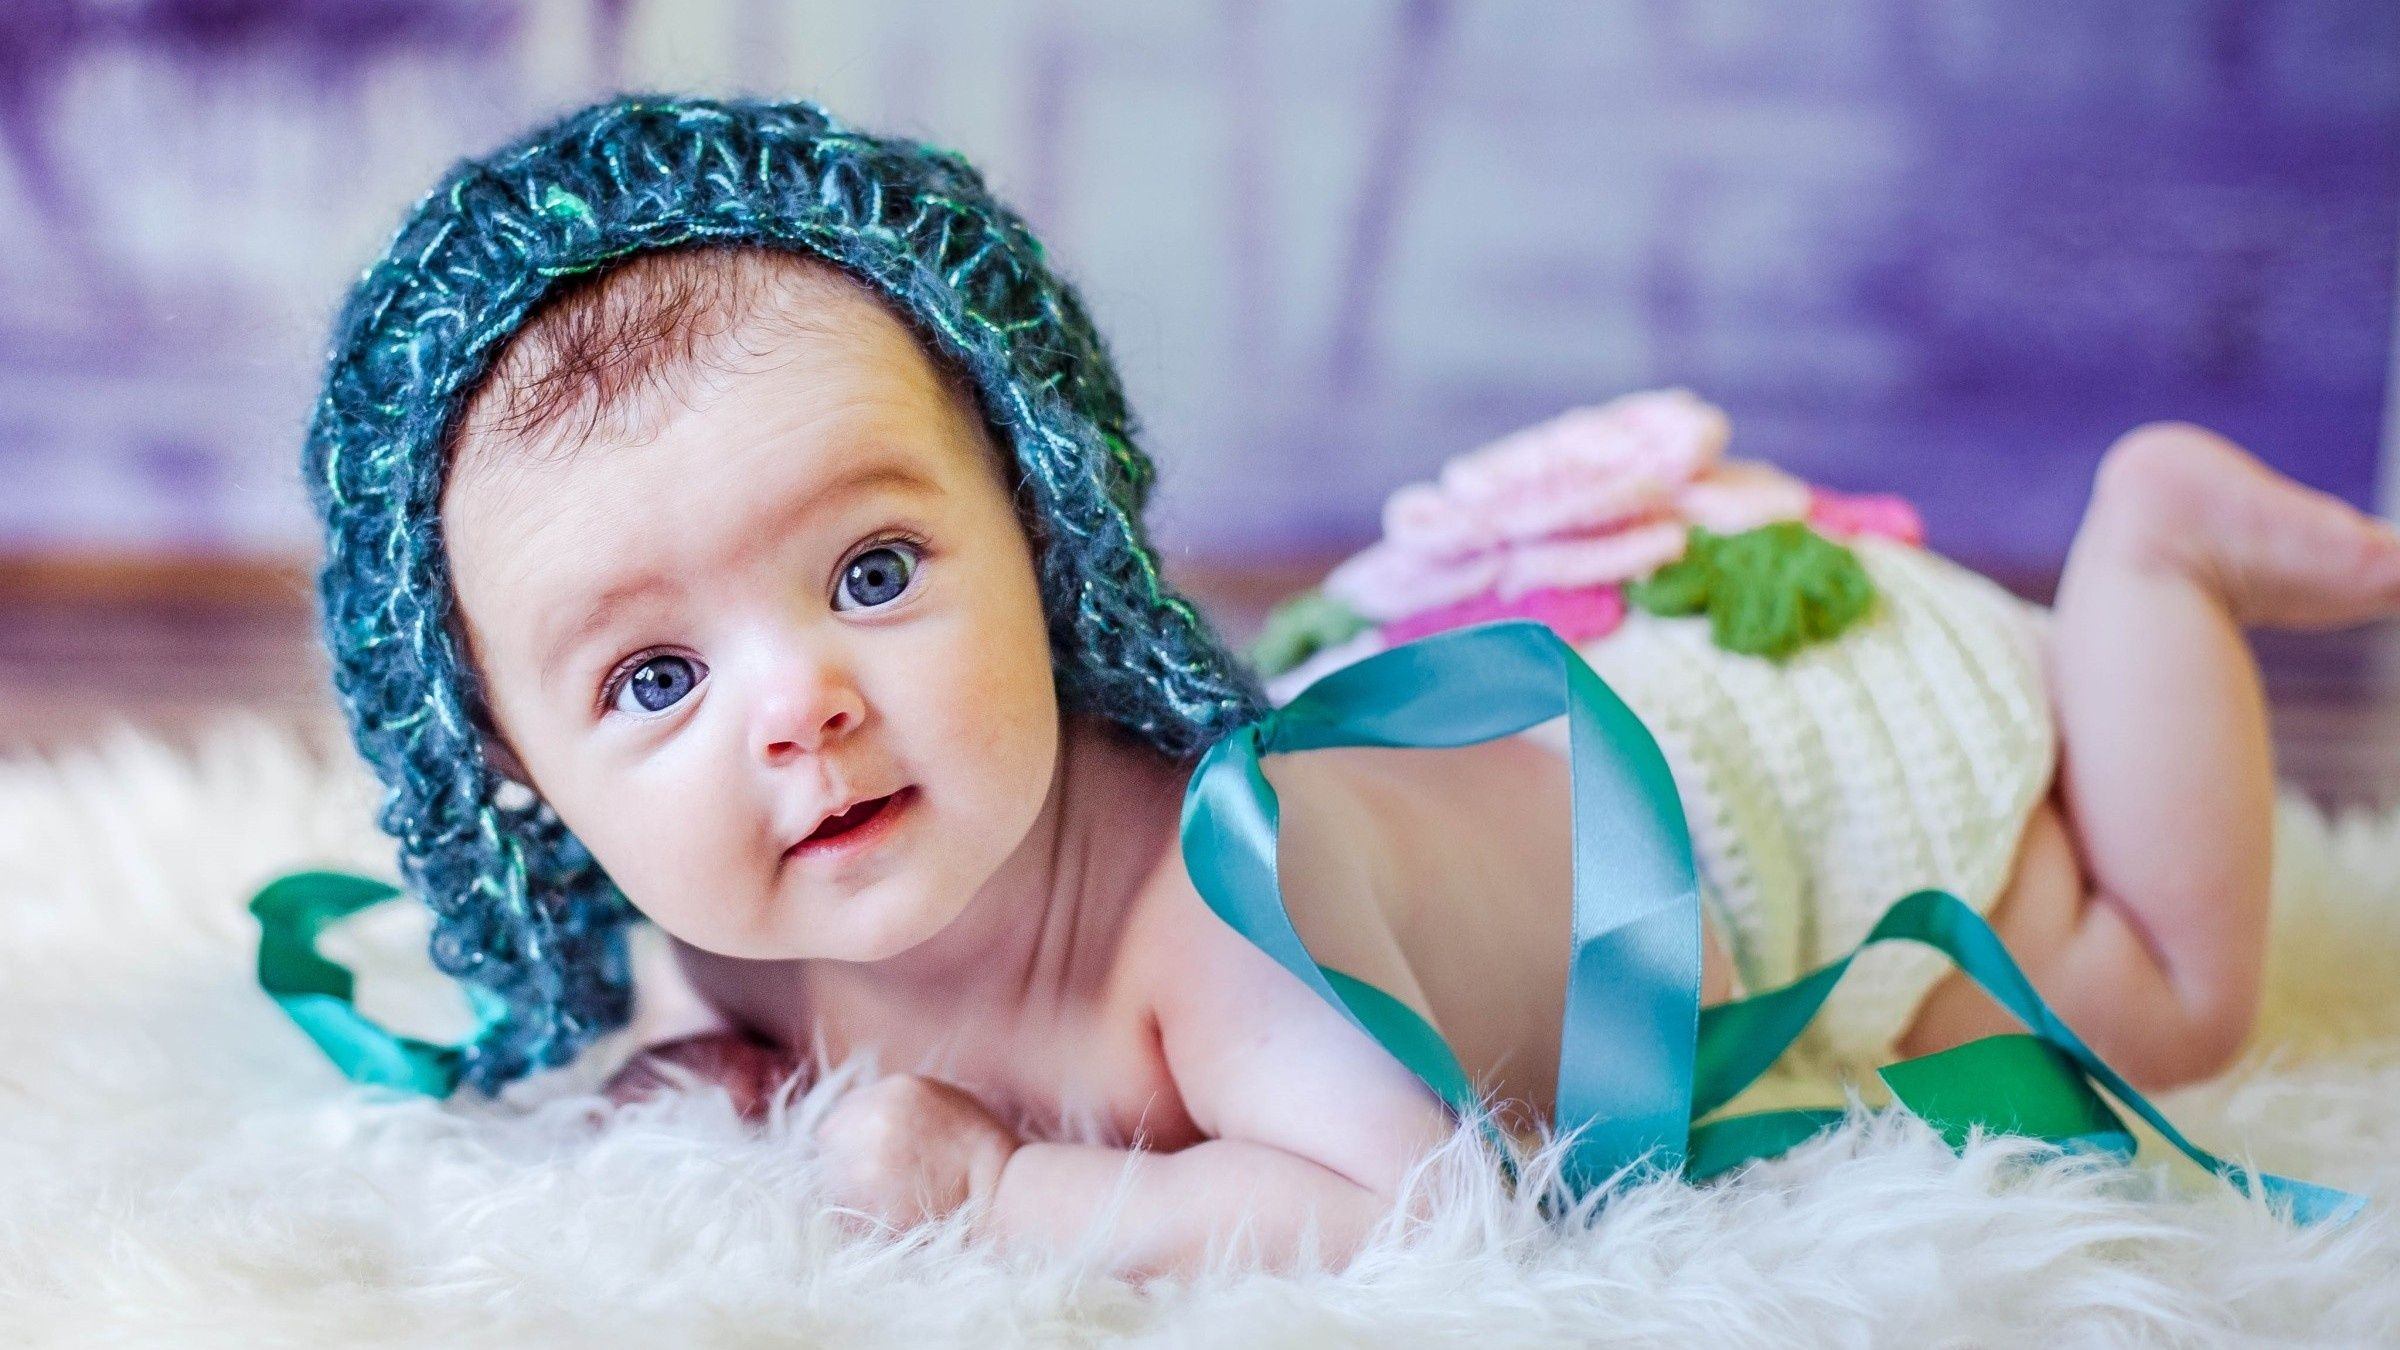 cute baby eyes wallpaper. download free cute baby wallpapers. best